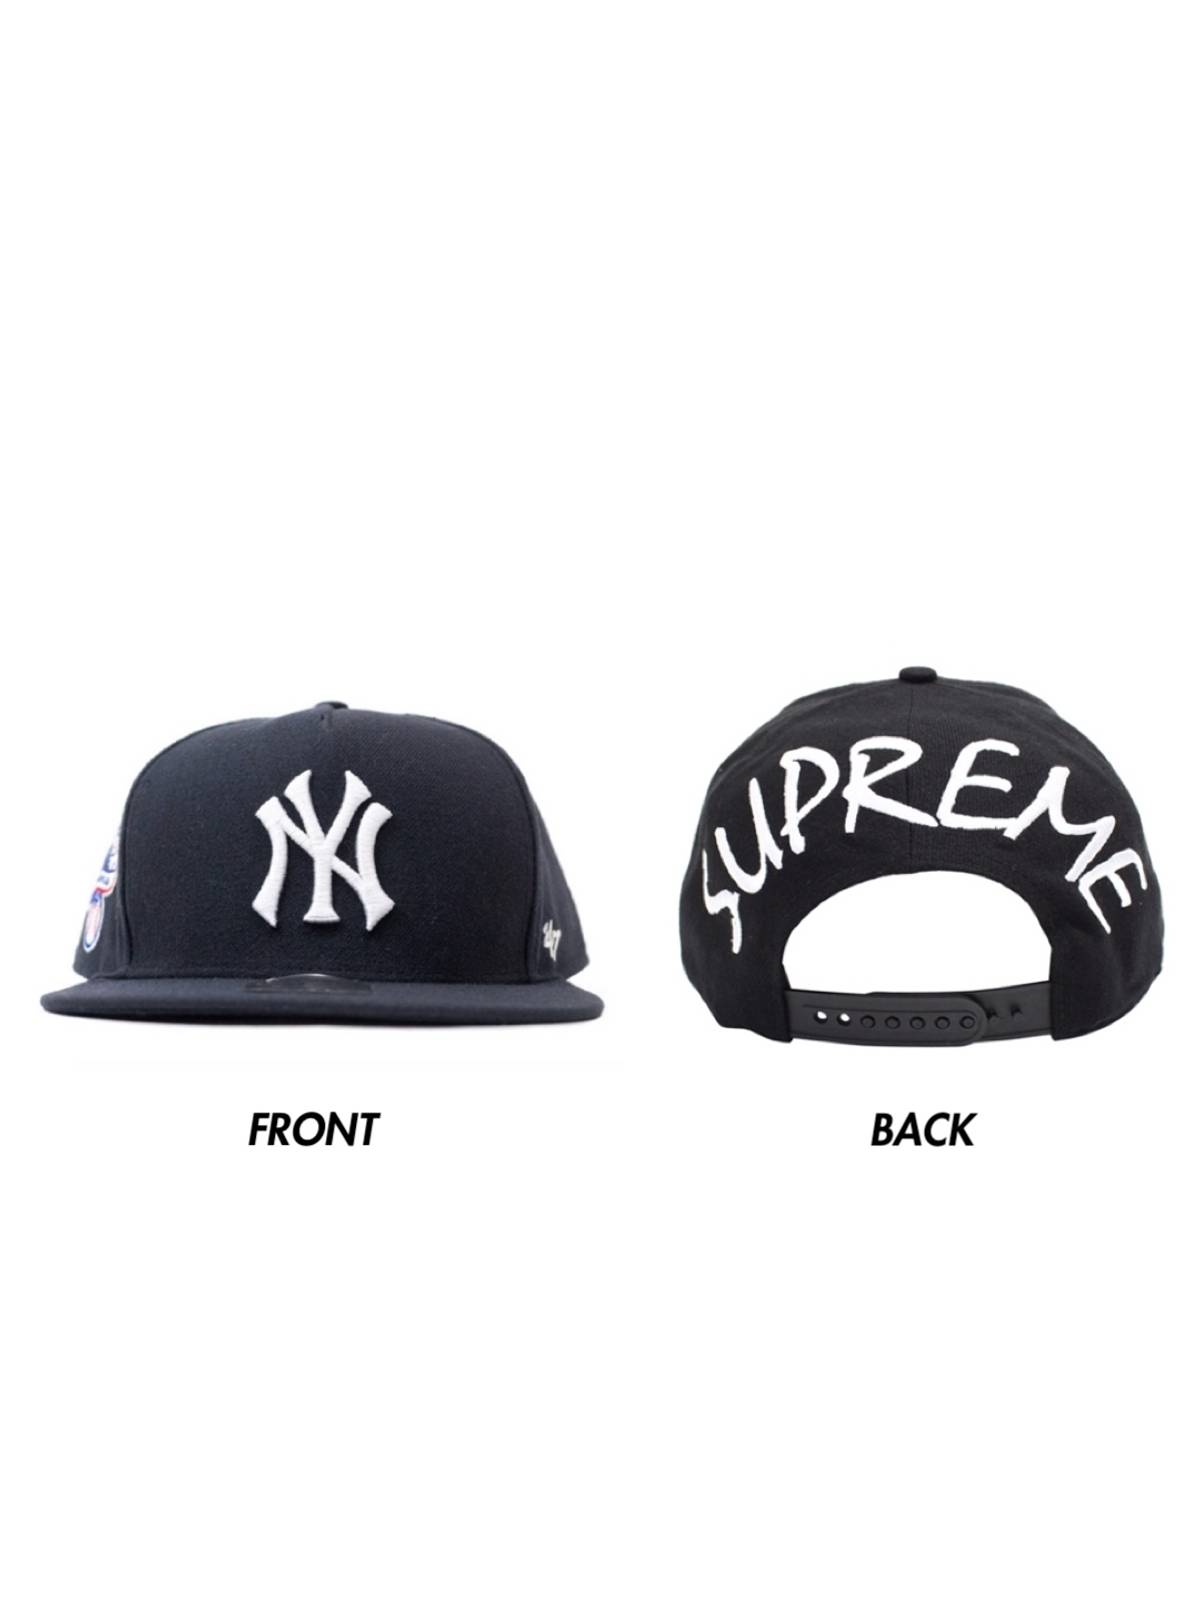 Supreme Supreme Yankees 5 Panel Snapback Hat (ss15) | Grailed